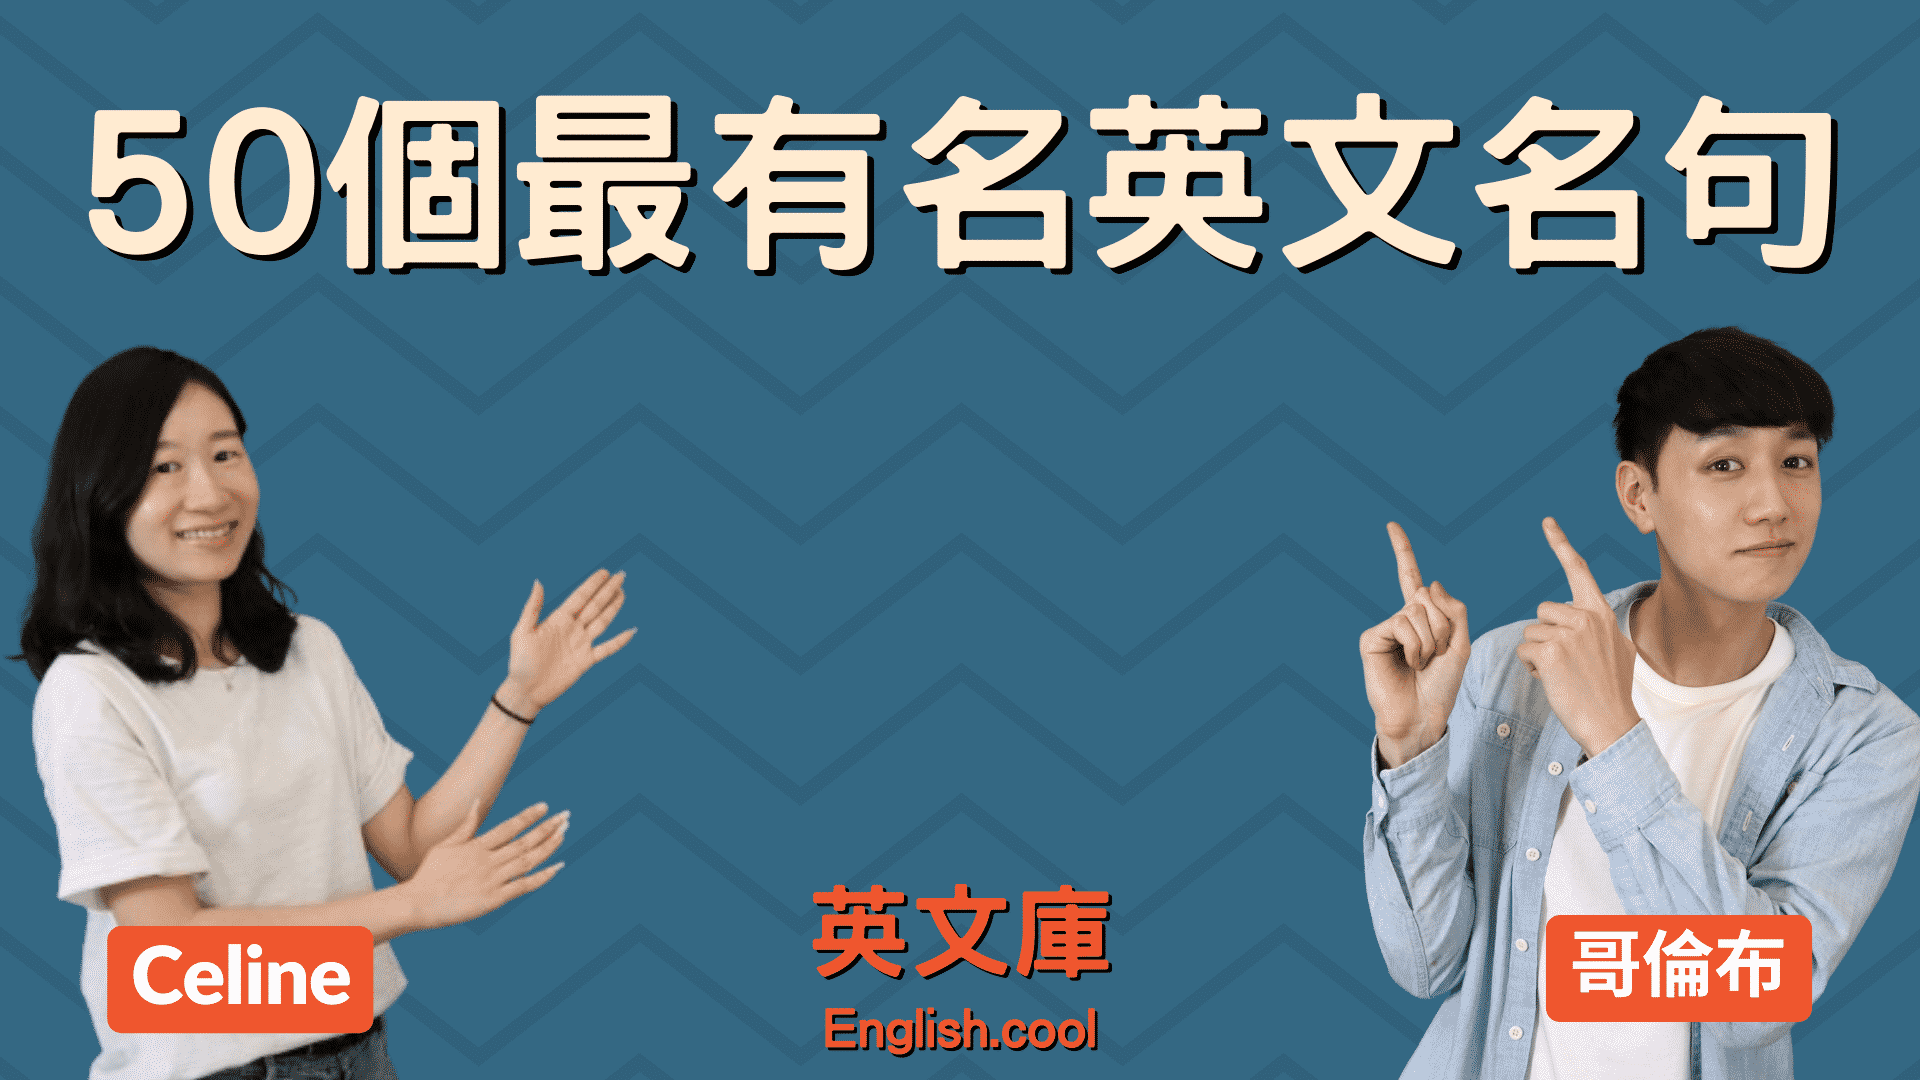 You are currently viewing 50個史上最有名的英文名句